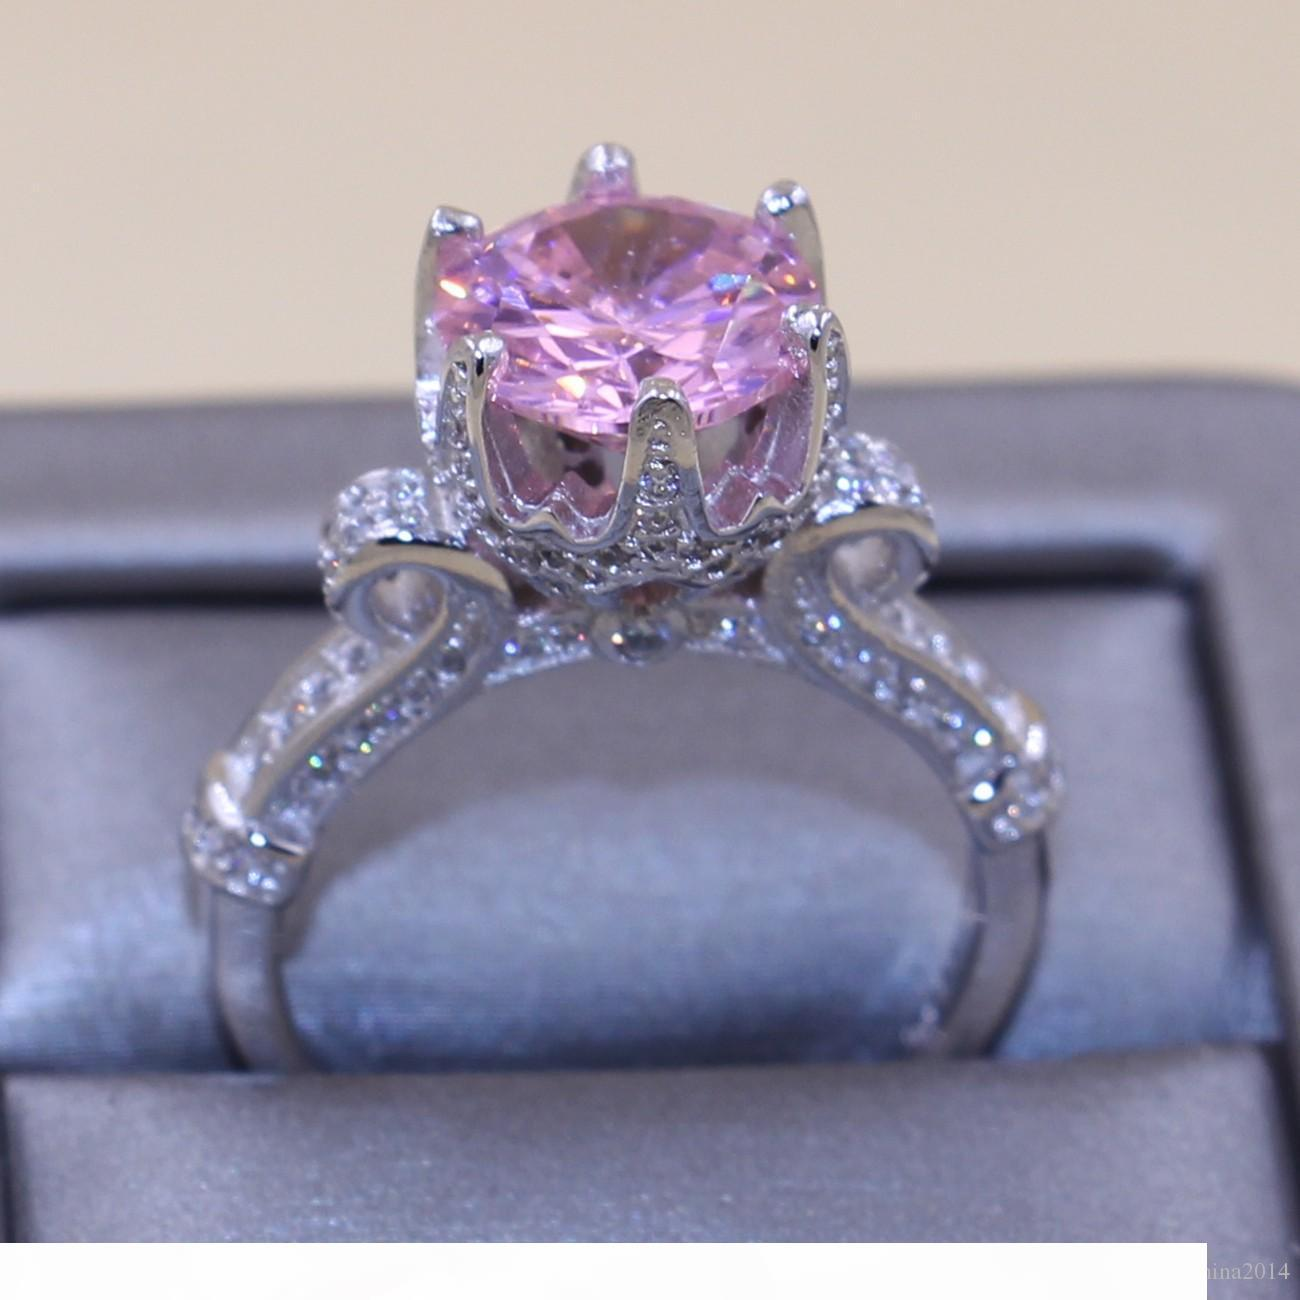 Victoria Wieck Solitaire 9mm Luxury Jewelry 925 Sterling Silver Round Cut Pink Sapphire CZ Diamond Women Wedding Crown Ring Gift Size 5-11